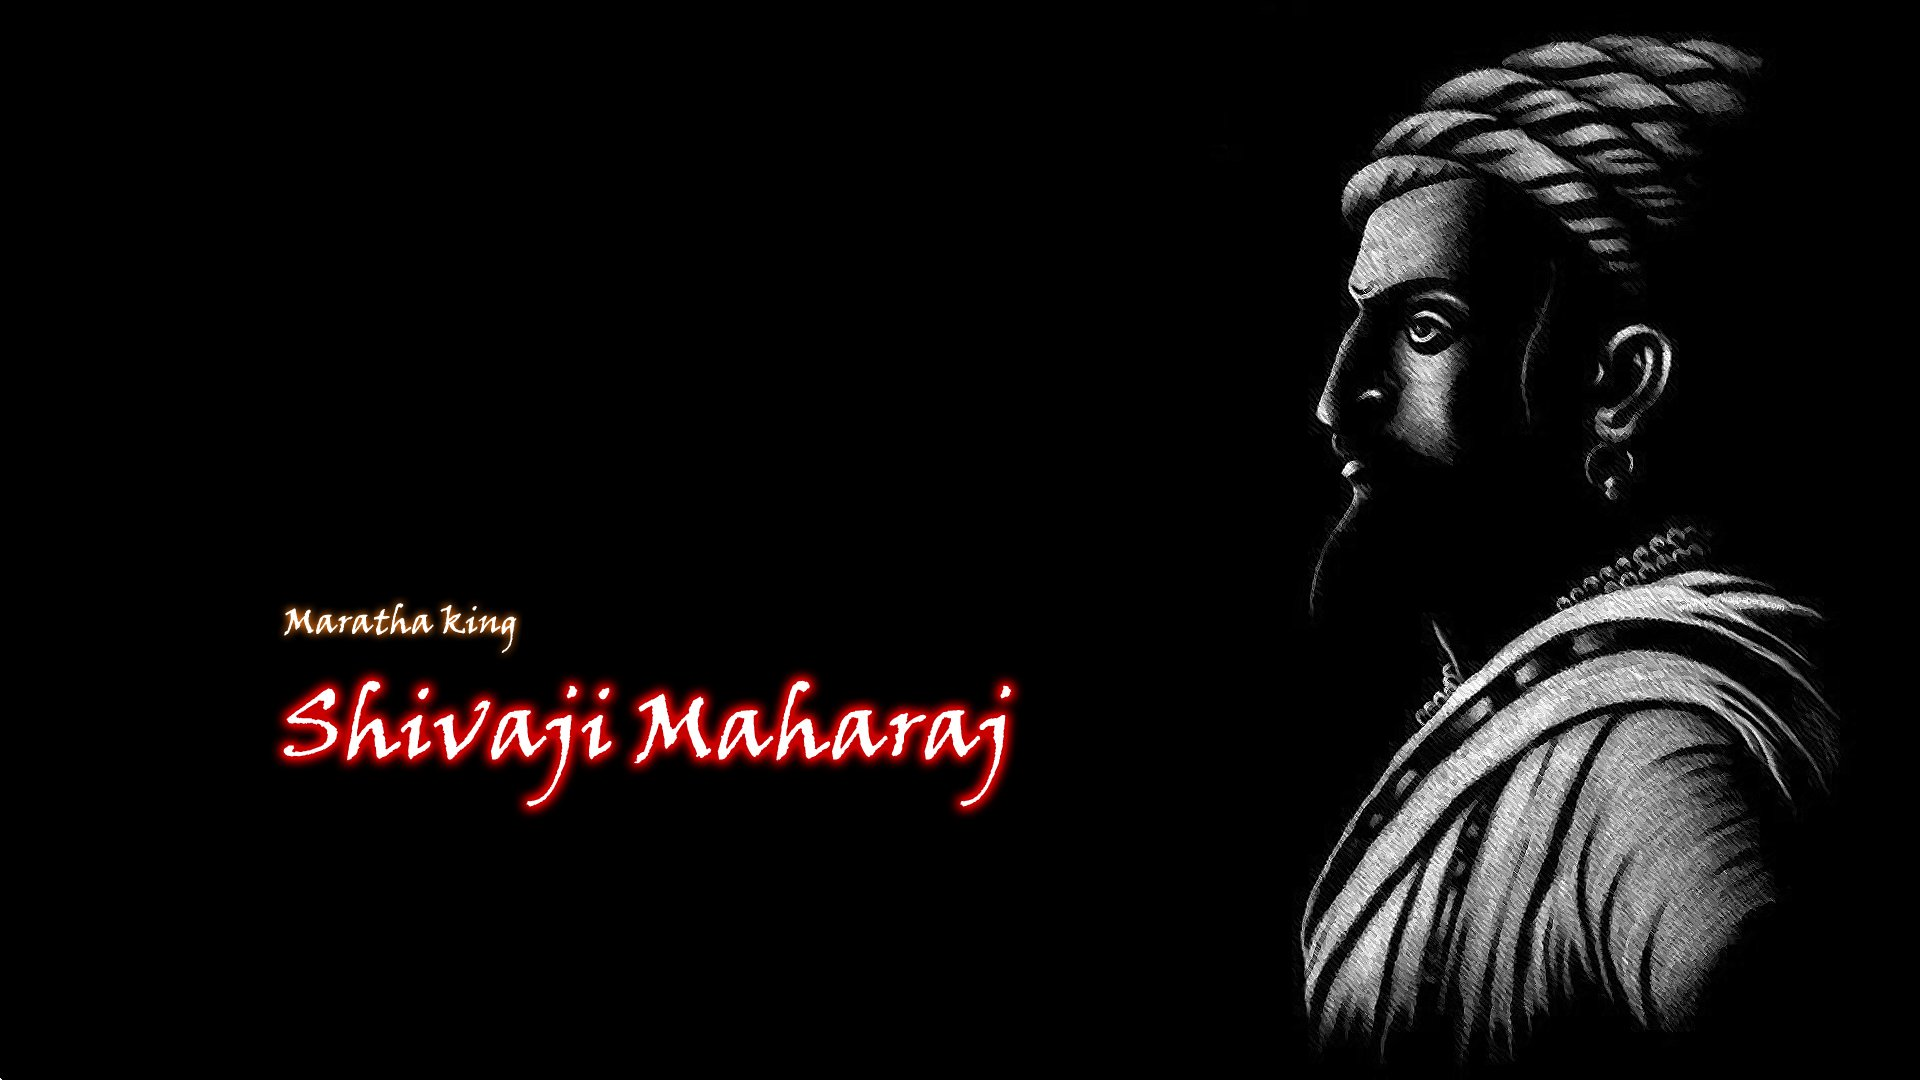 Maratha king Shivaji Maharaj Wallpaper